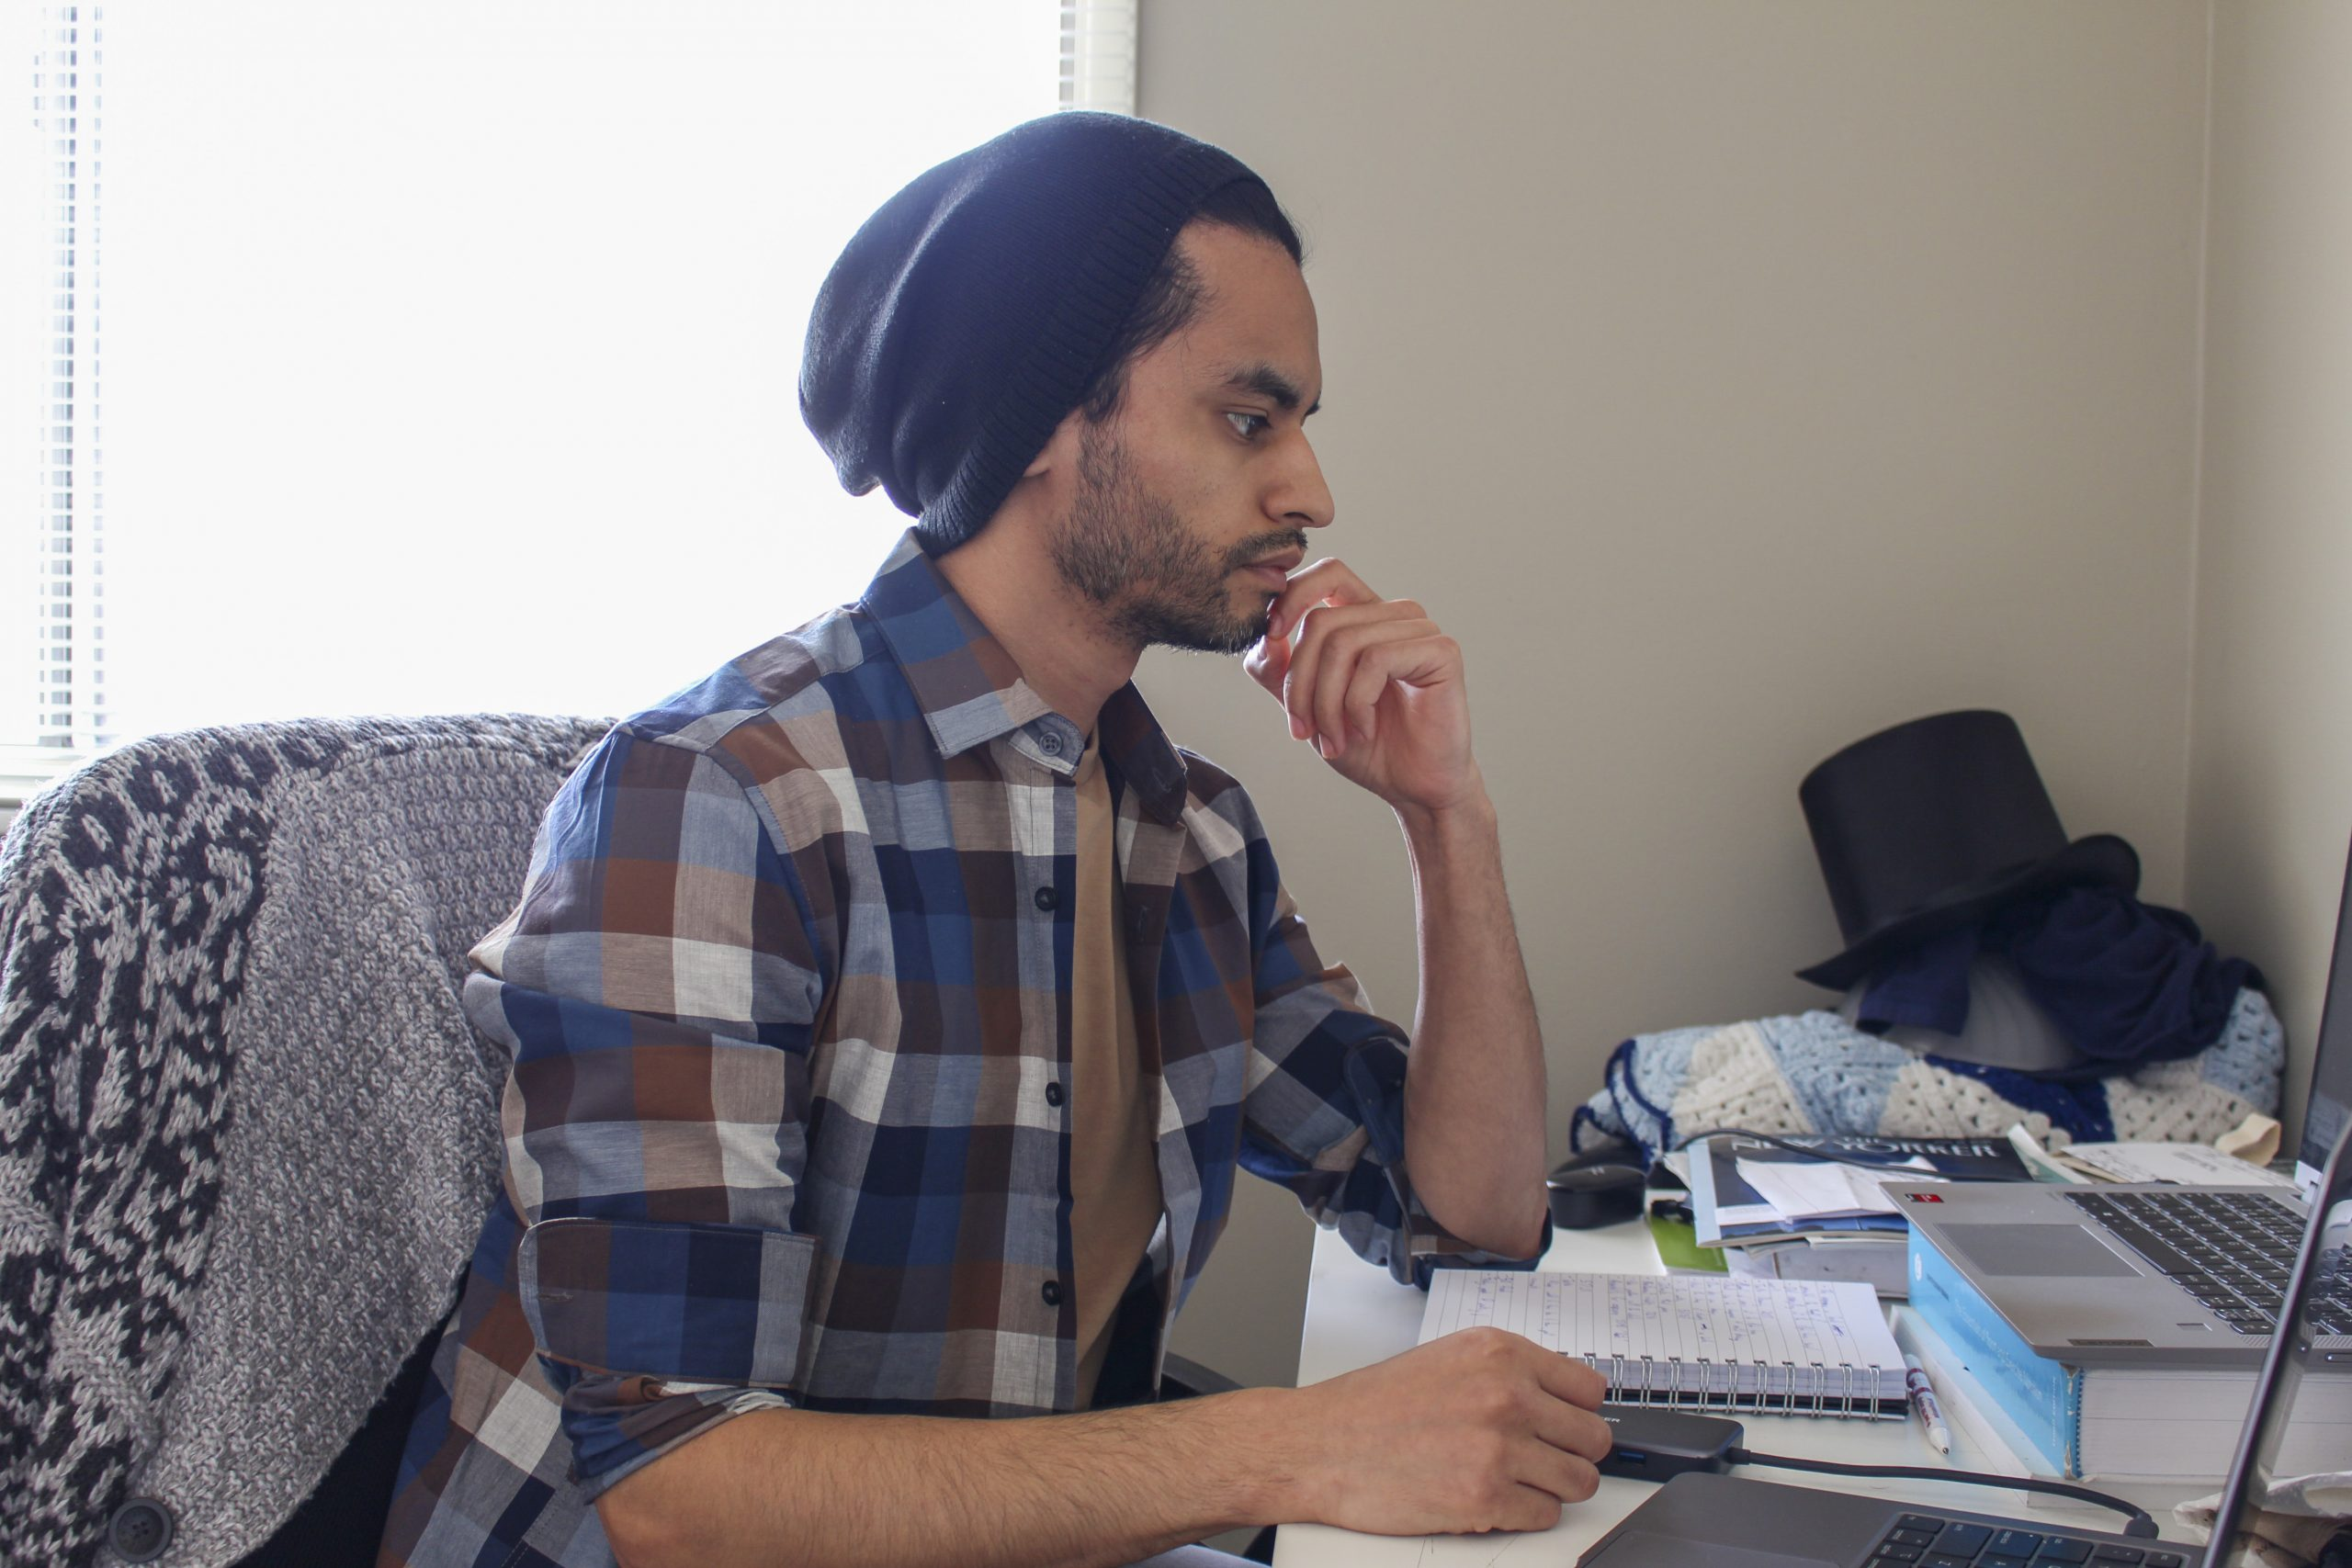 Alejandro Melgar sits in front of his laptop in his apartment in Calgary on April 2, 2021. Melgar is a journalism student at SAIT, and at 32, has been attending online school as a result of the COVID-19 pandemic. (Photo by Alejandro Melgar/SAIT)